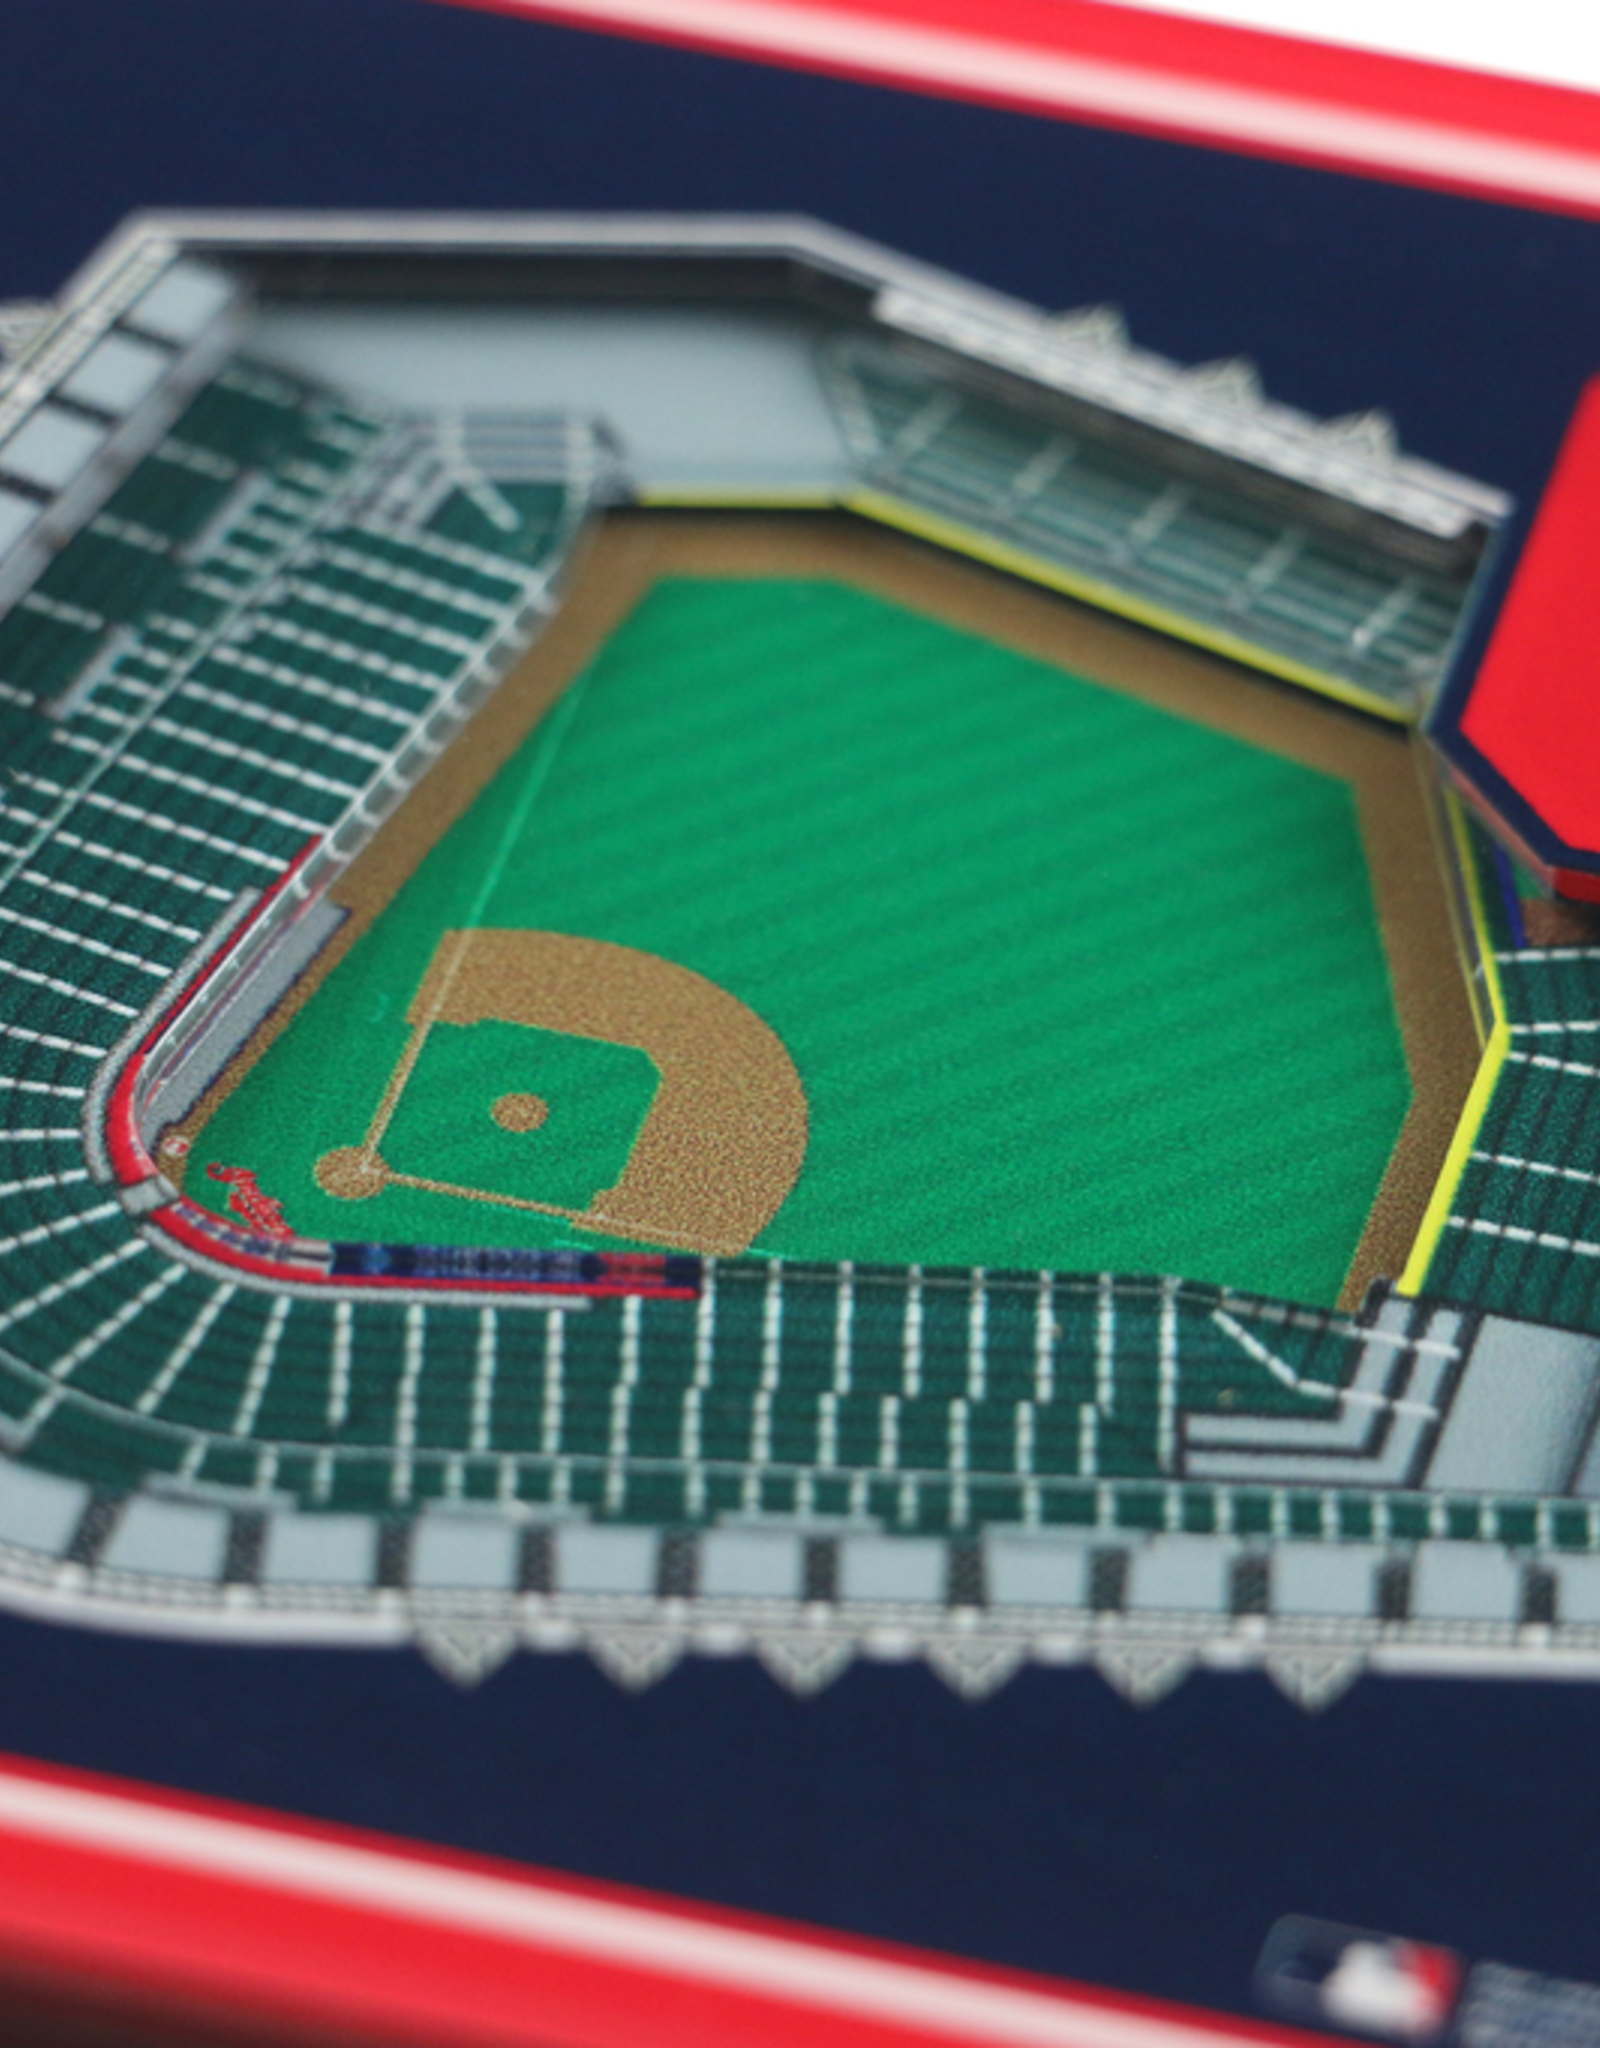 YOU THE FAN Cleveland Indians 3-D StadiumViews Coasters 2-Pack